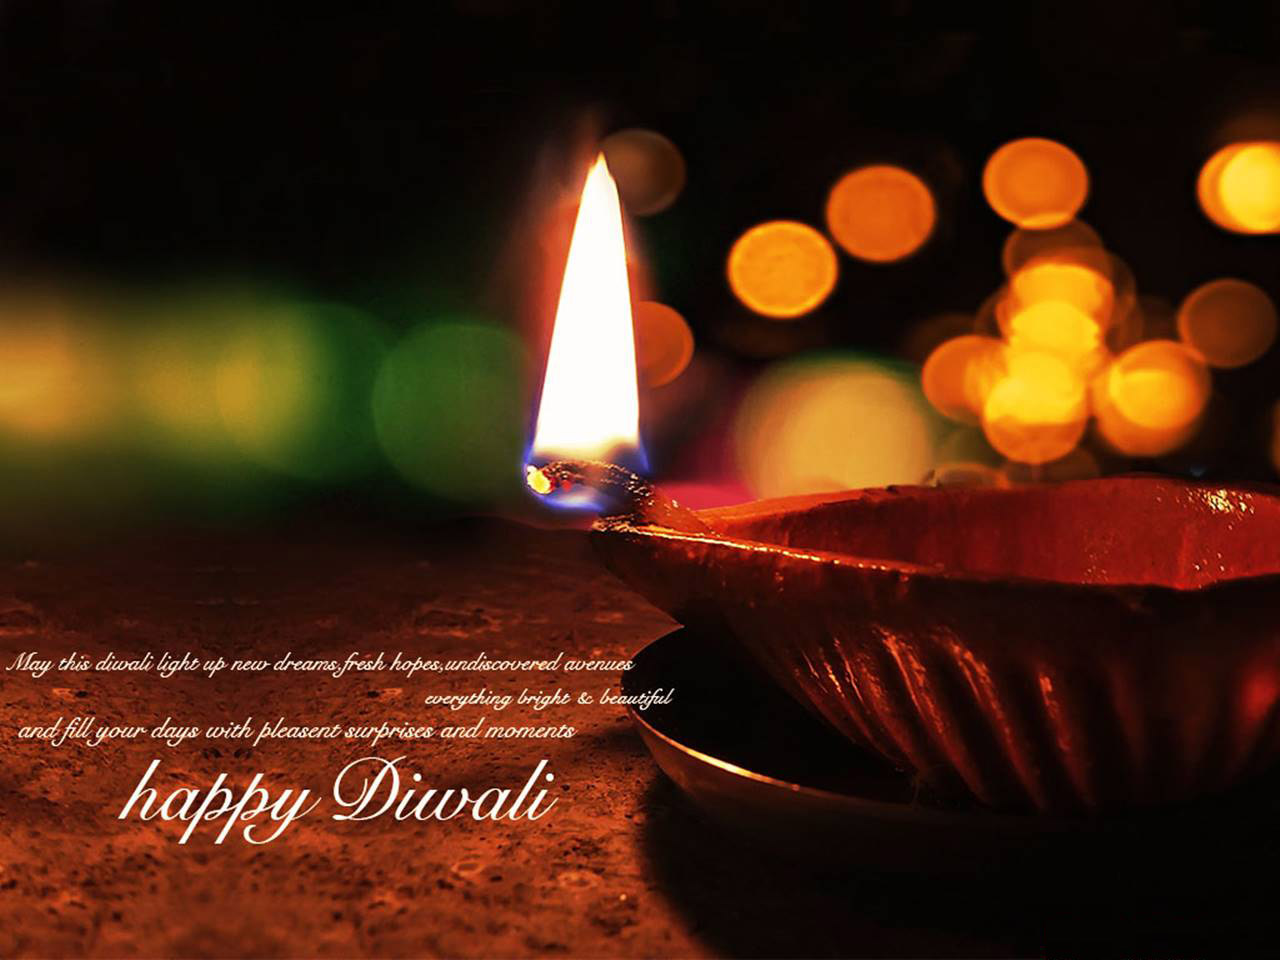 Download diwali hd wallpapers 2016 infotainment jobs - Hd wallpaper happy diwali ...